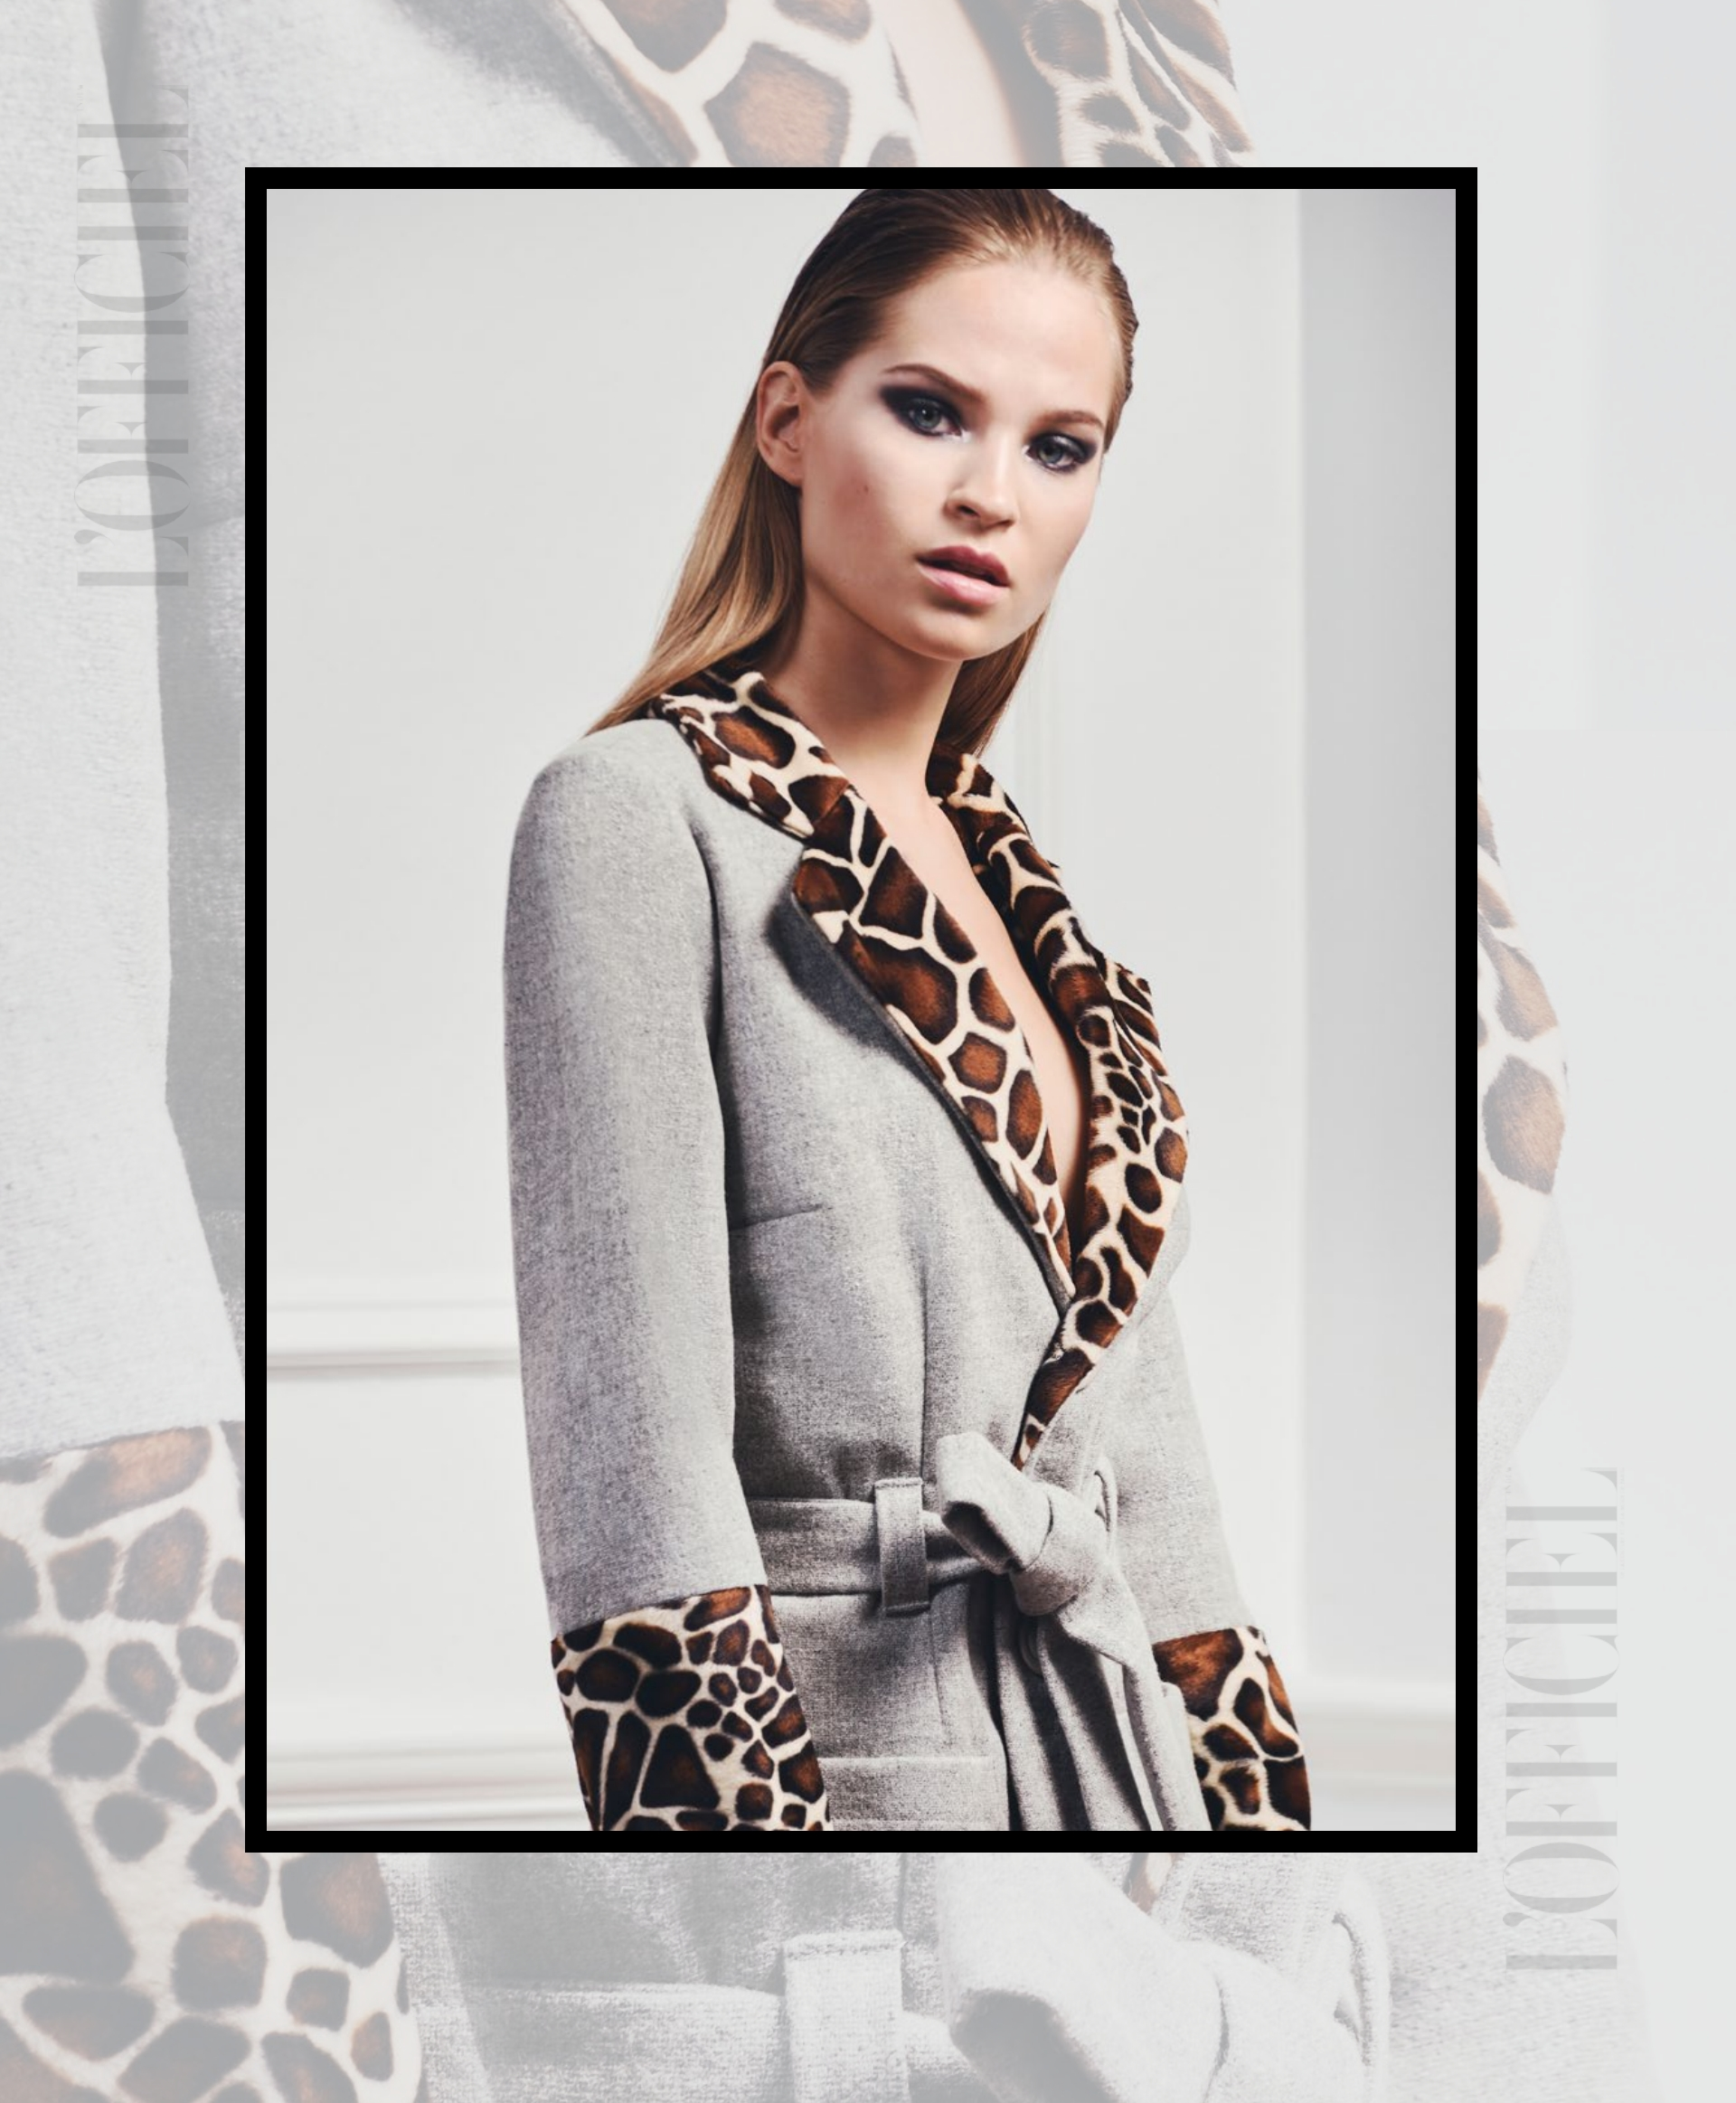 L'Officiel India features fashion designer Tomasz Kociuba animal print coat